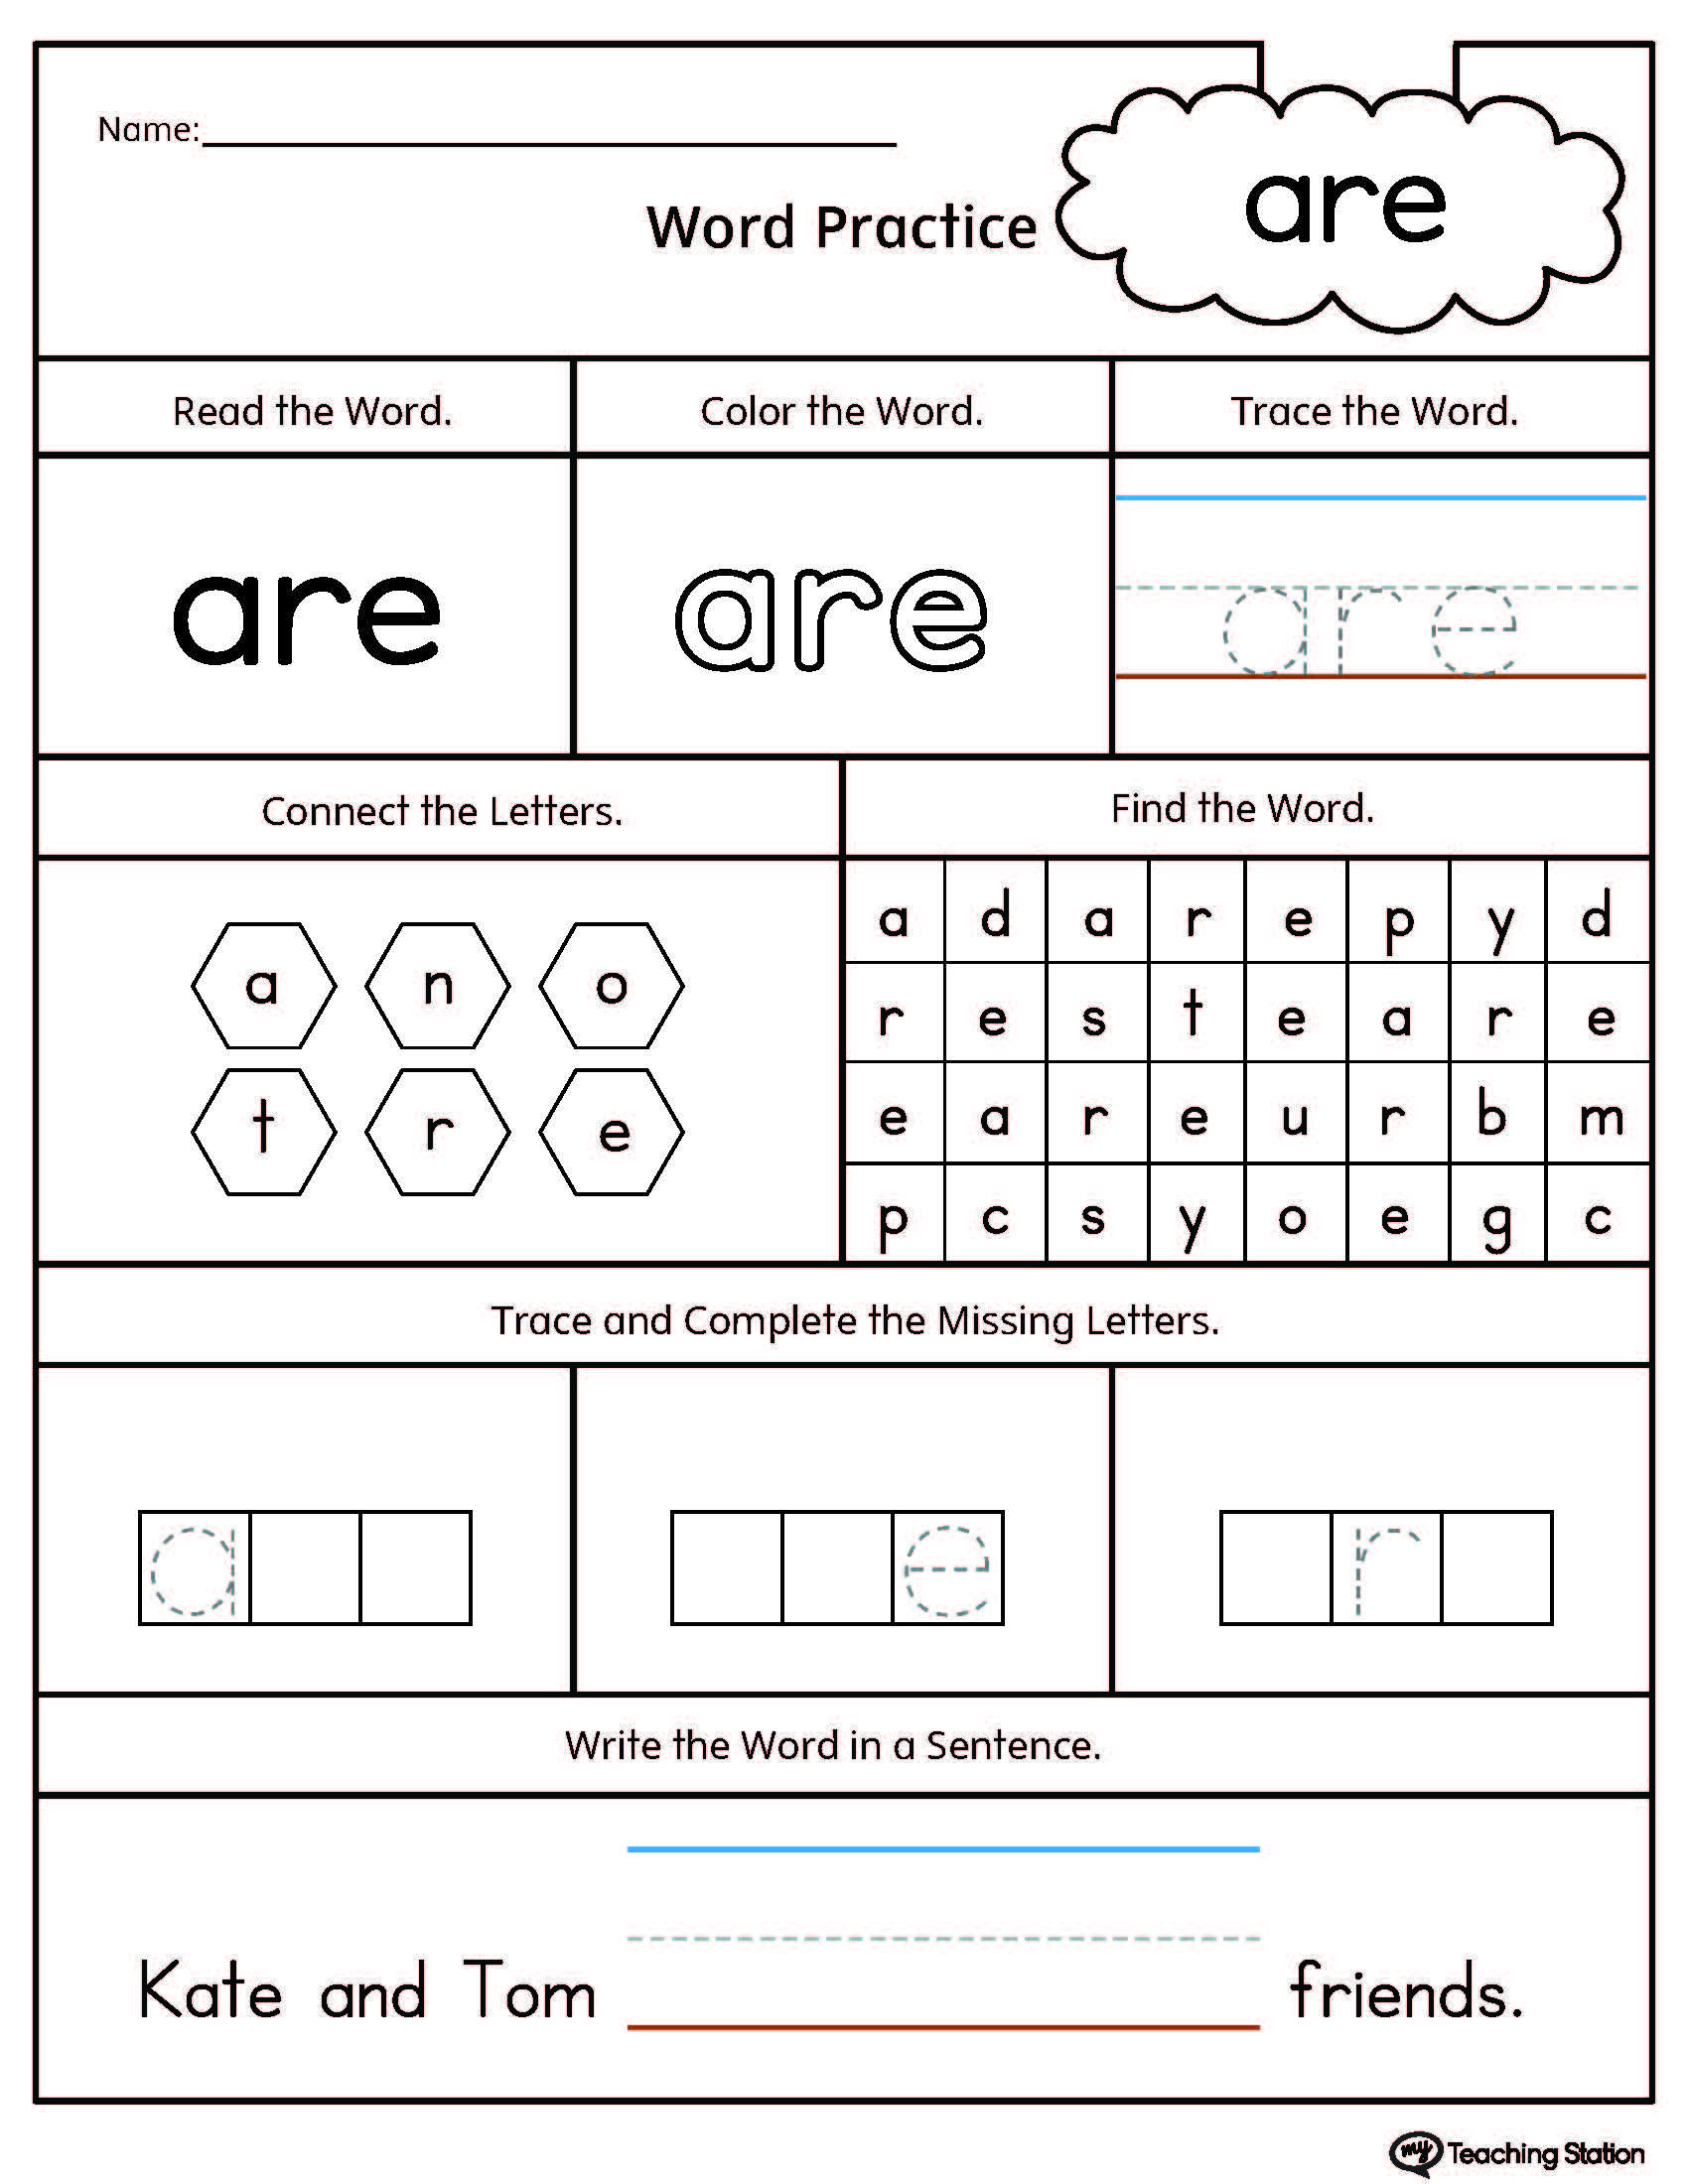 High Frequency Word Are Printable Worksheet With Images